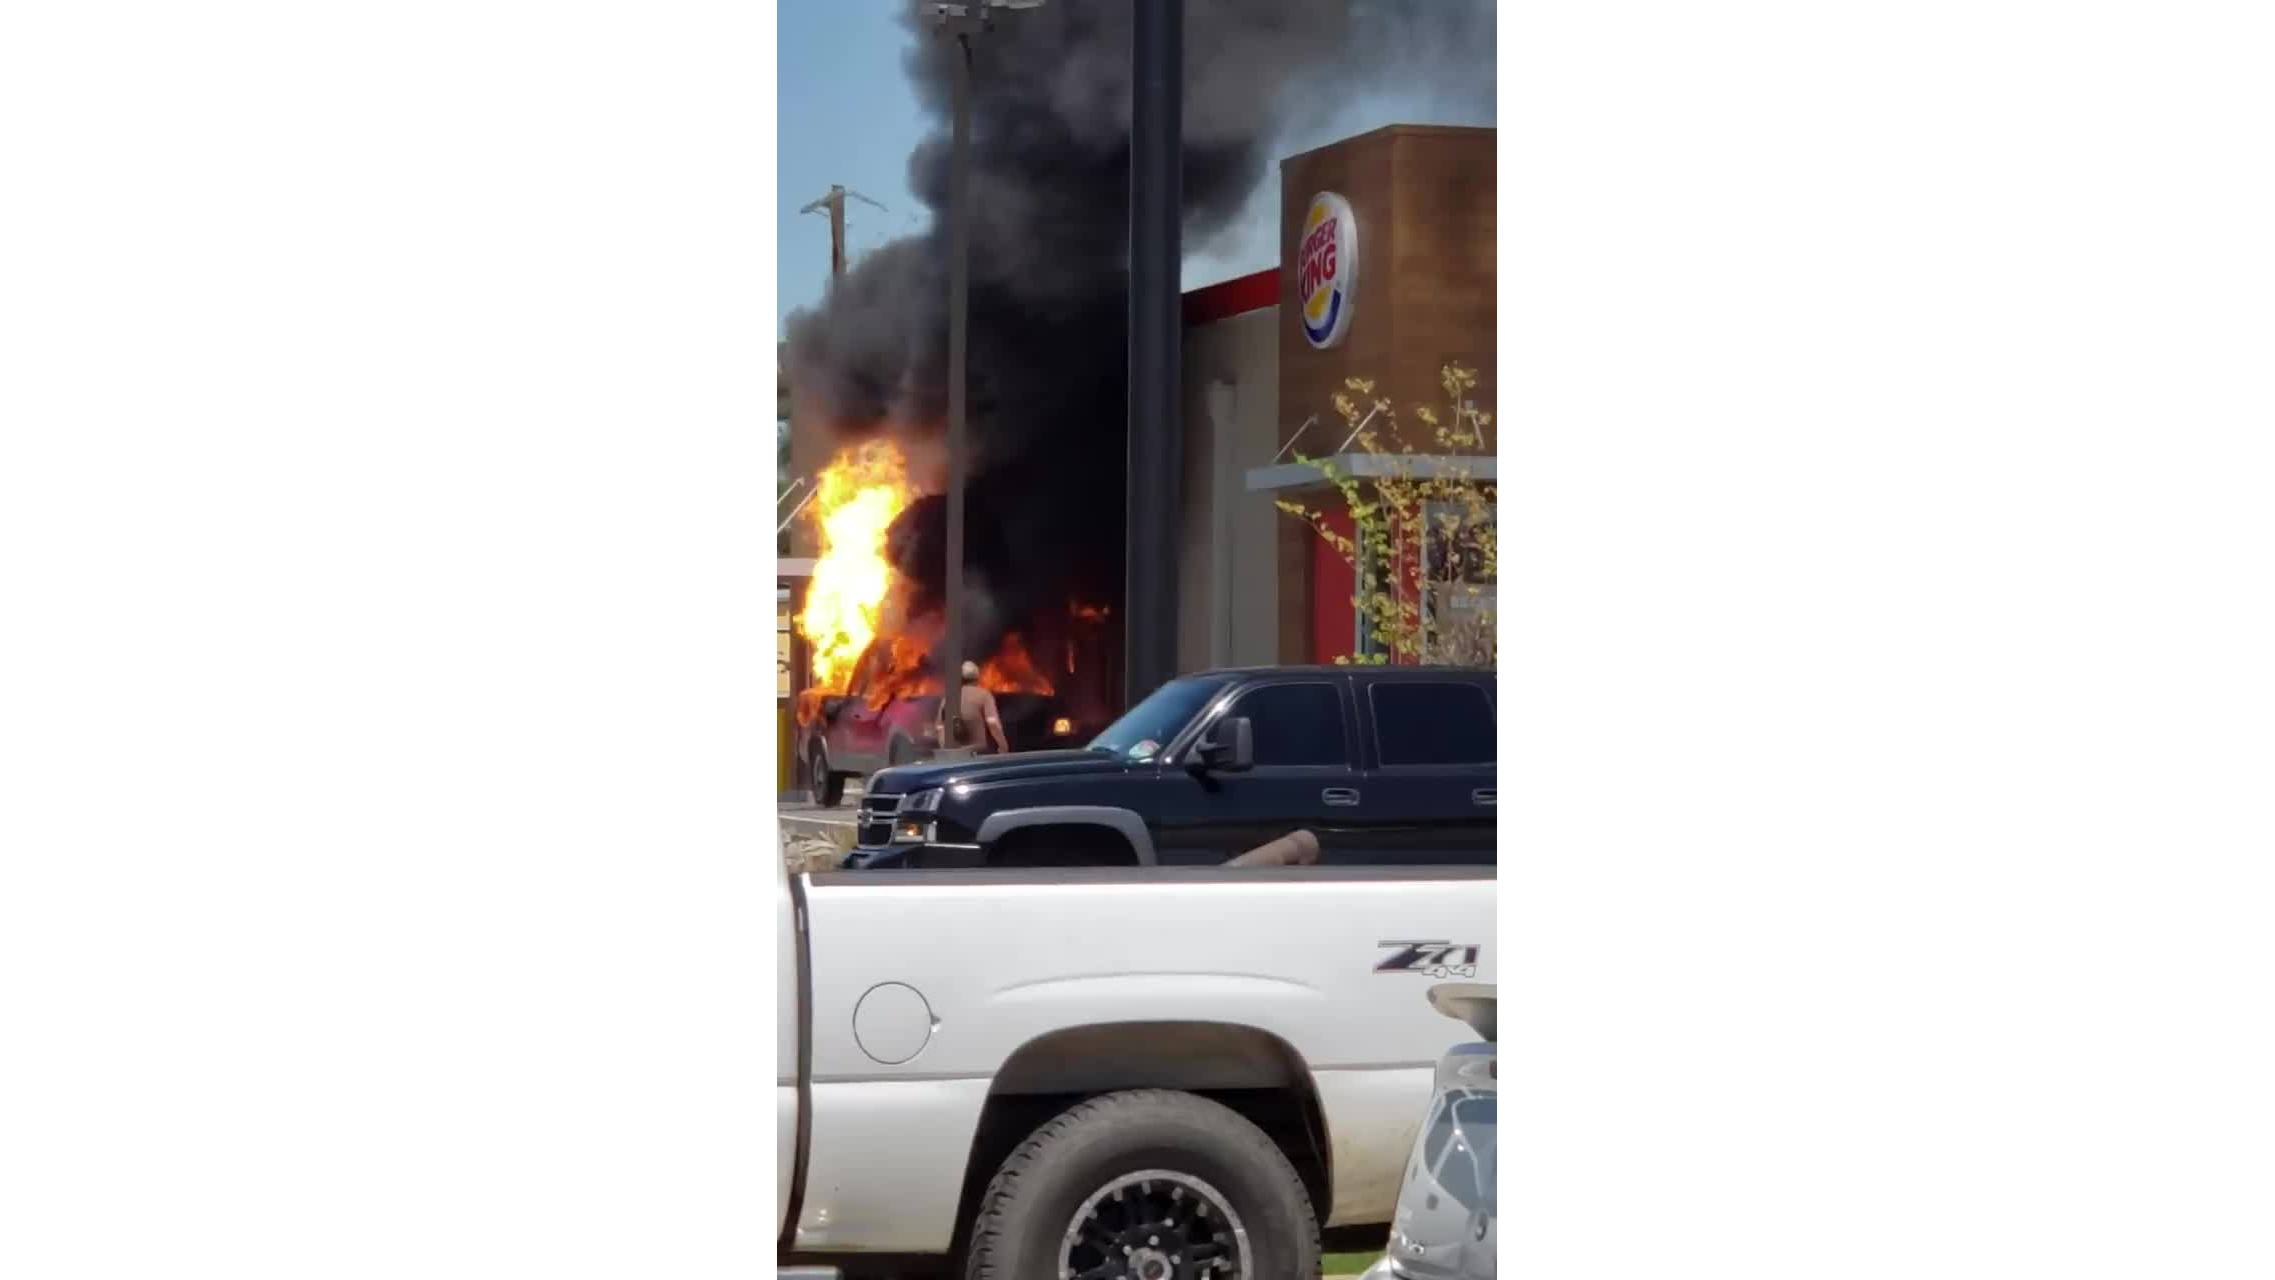 Beebe_explosion_at_Burger_King_drive_thr_0_20190426190658-118809318-118809318